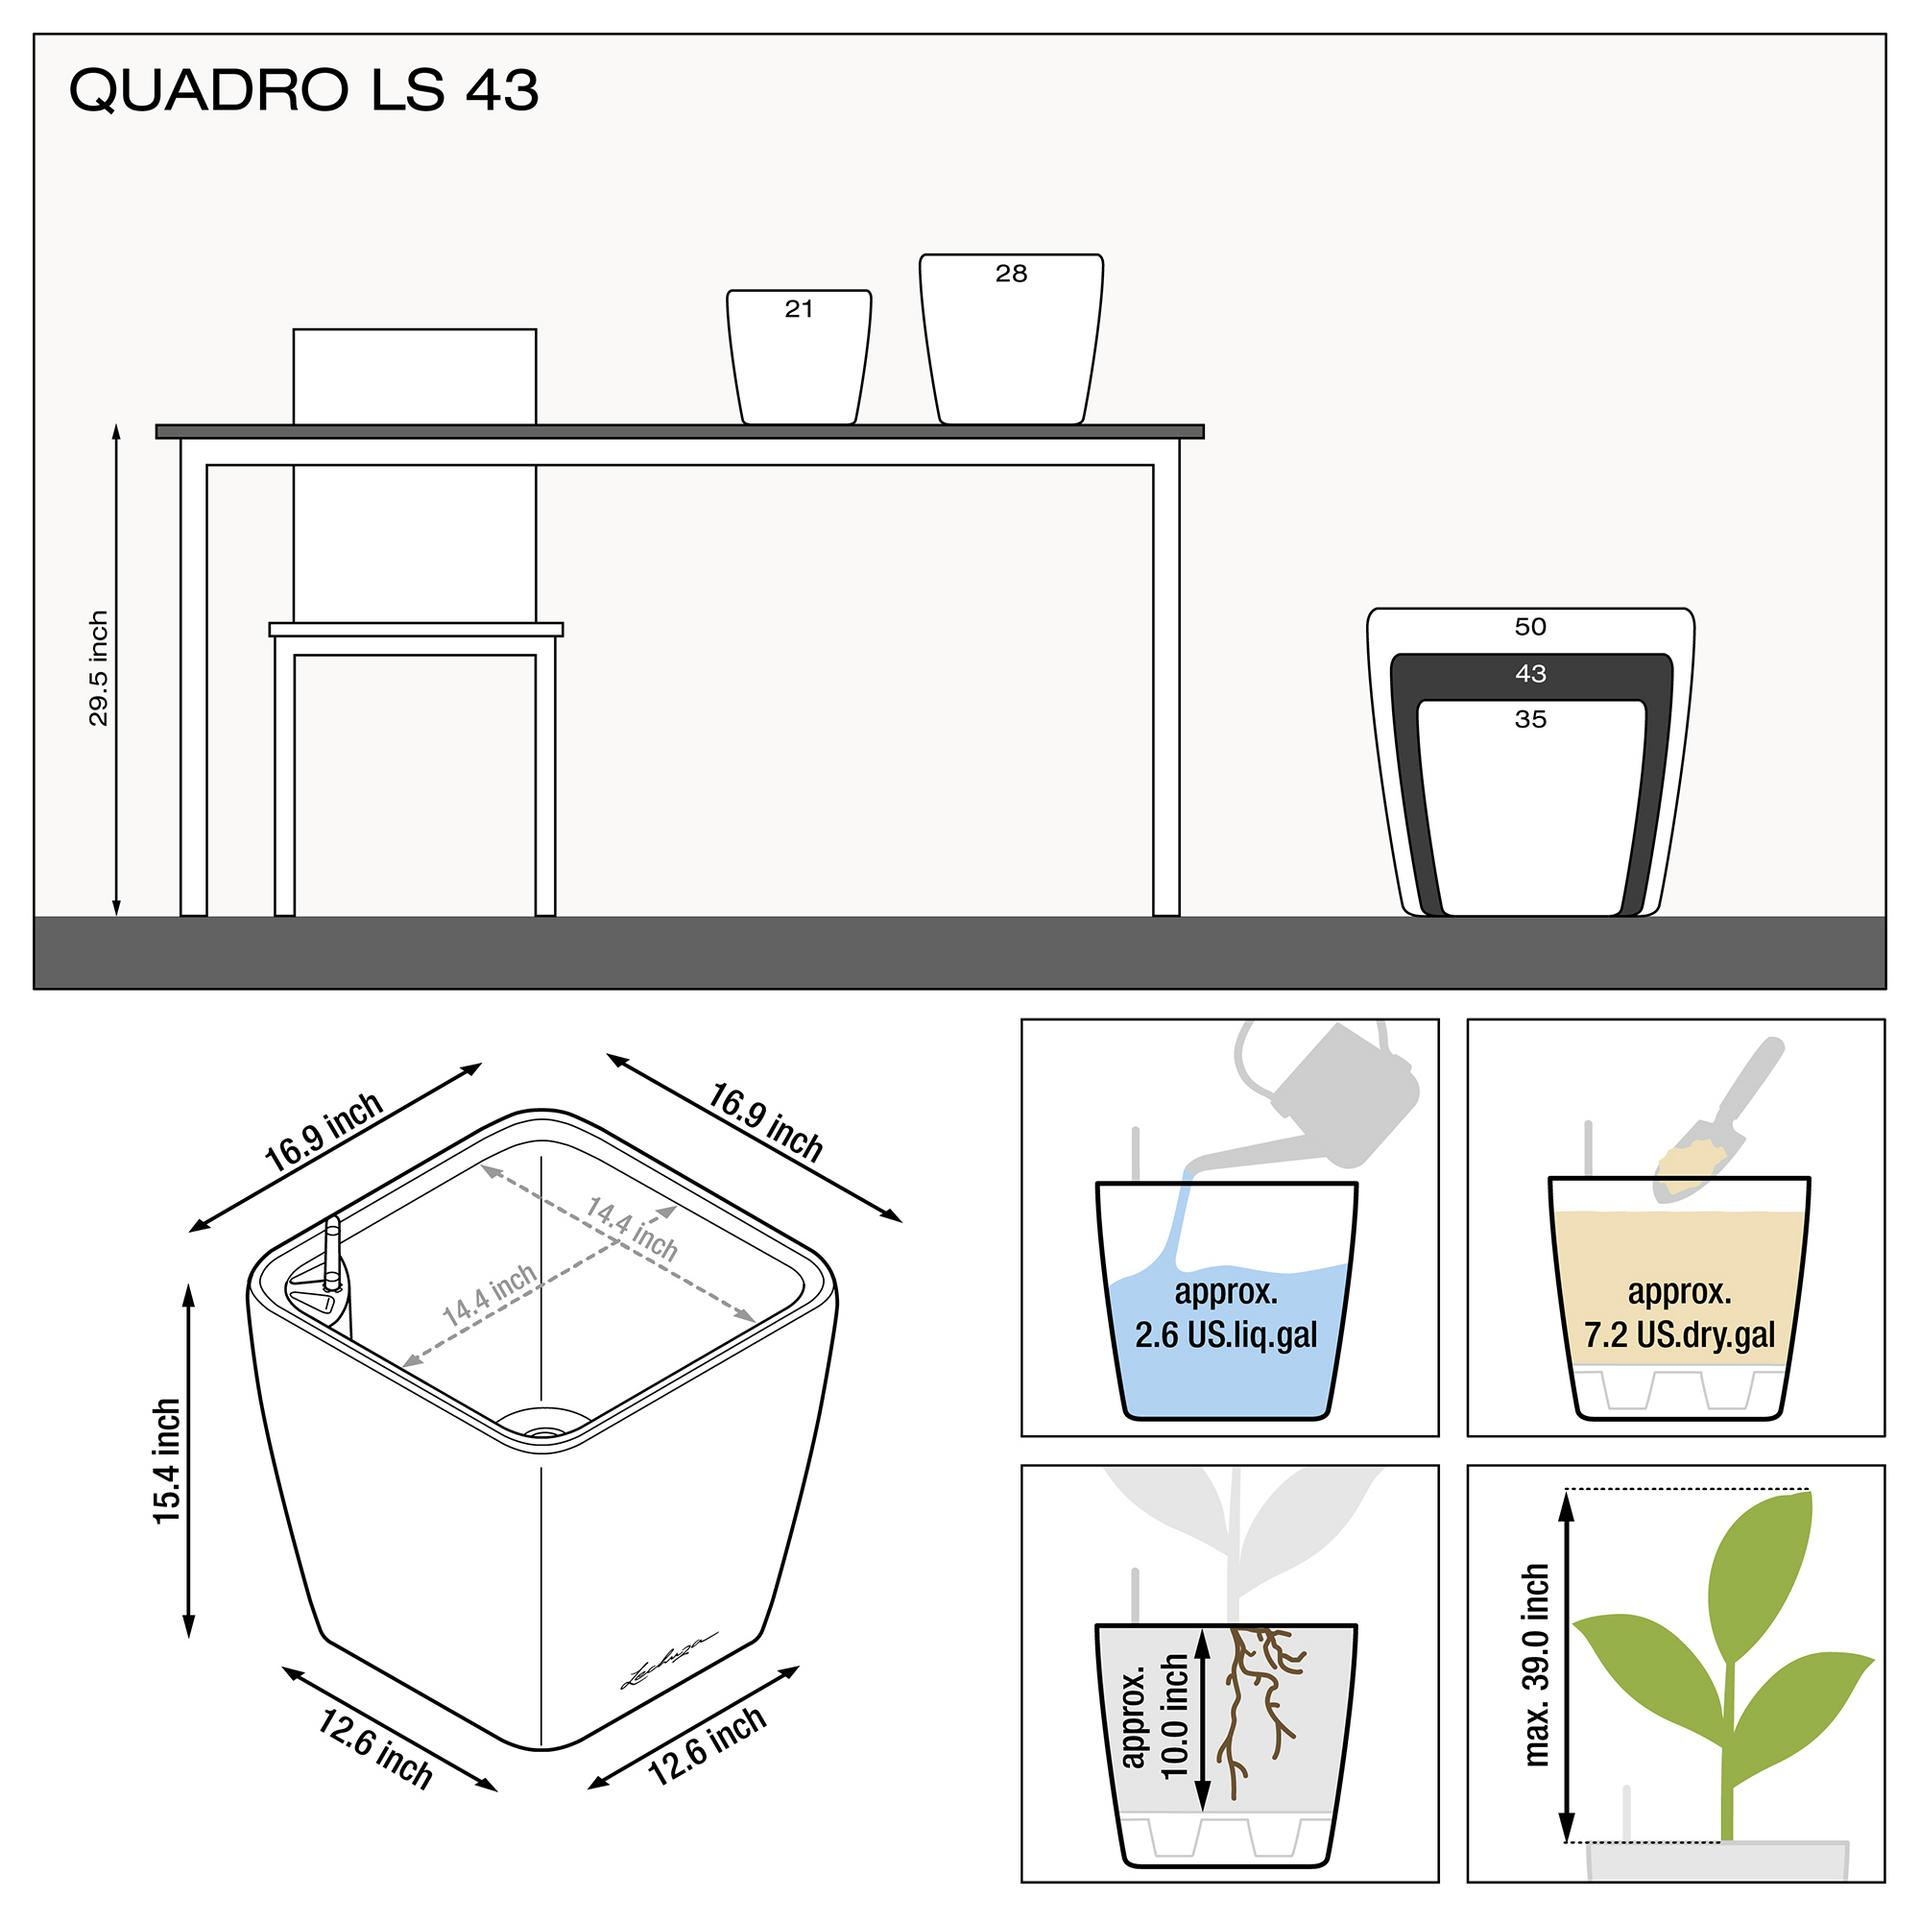 le_quadro-ls43_product_addi_nz_us